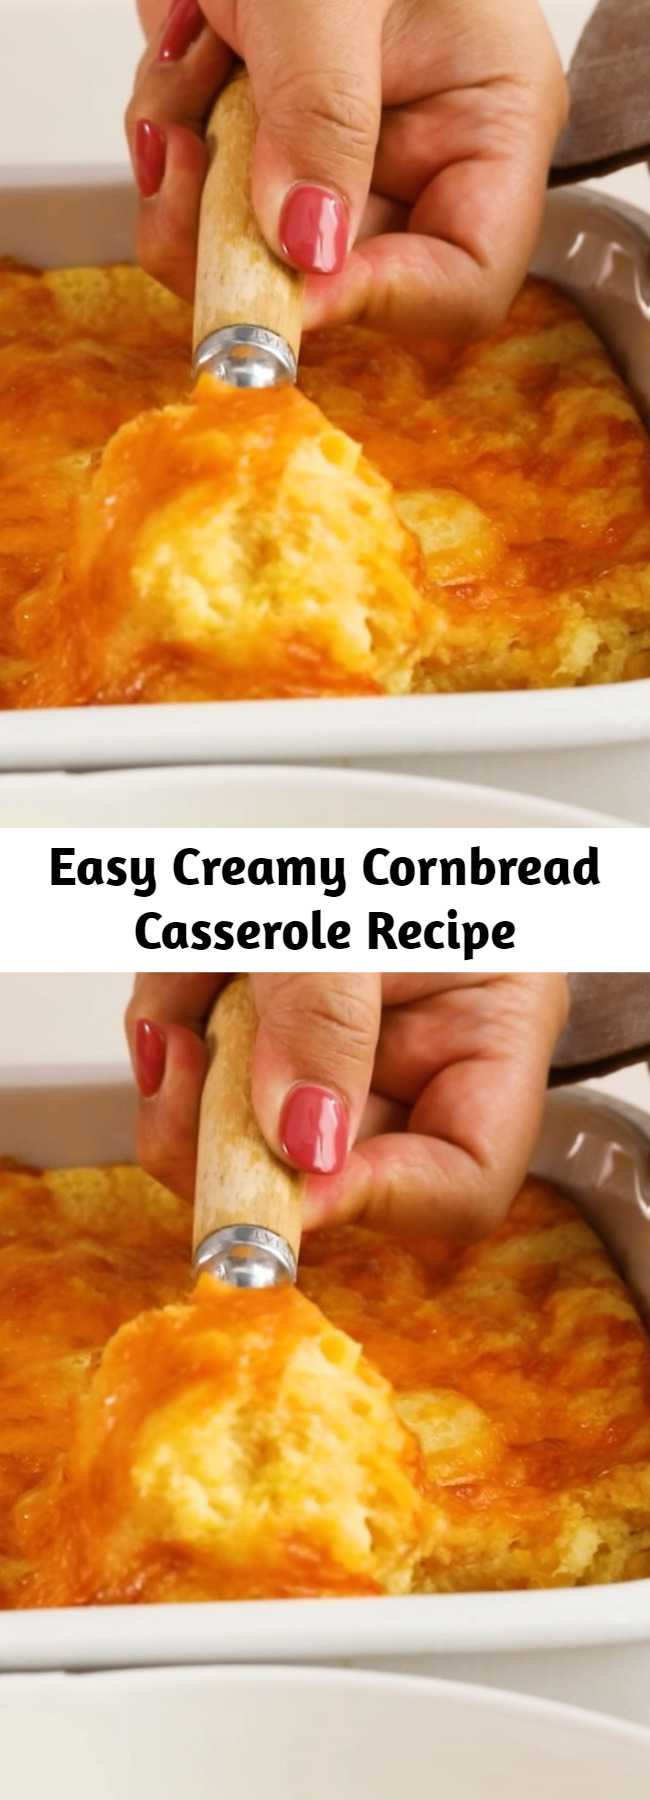 Easy Creamy Cornbread Casserole Recipe - This was amazing! First time I made it turned out perfectly, and was devoured within a half hour at a family gathering. Great for picky kids or adults.